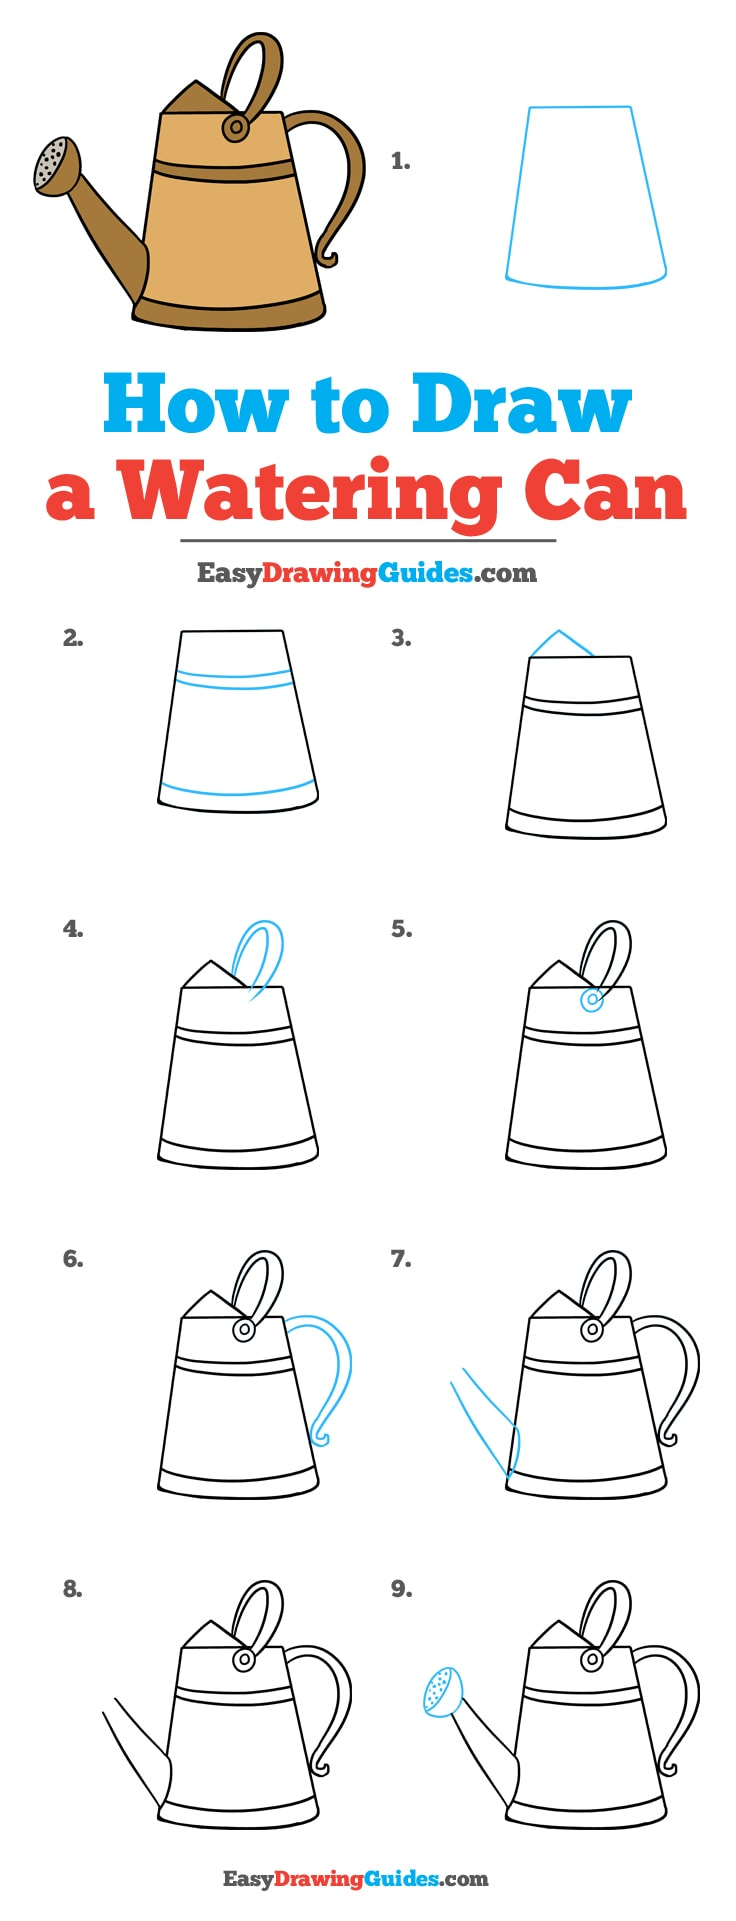 How to Draw a Watering Can: Step by Step Tutorial